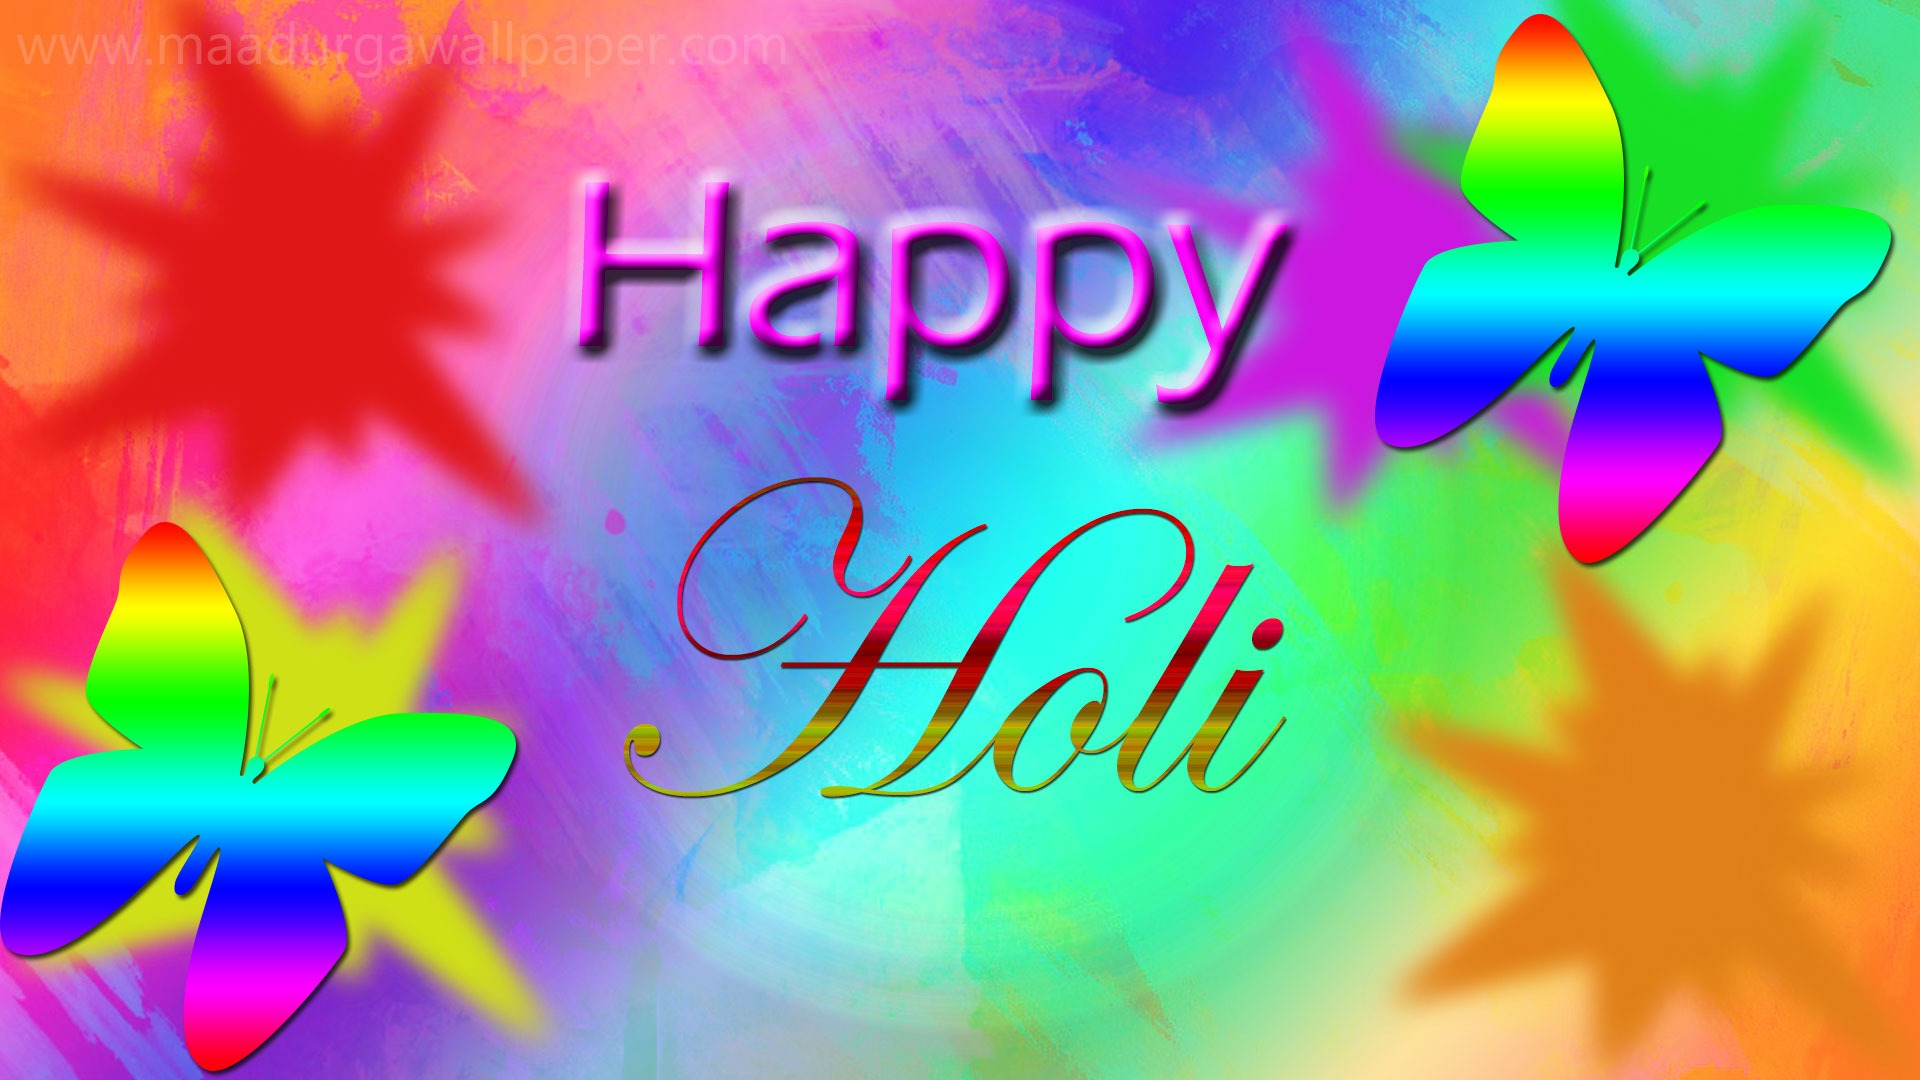 Happy Holi Images Greetings HD Wallpapers 2019